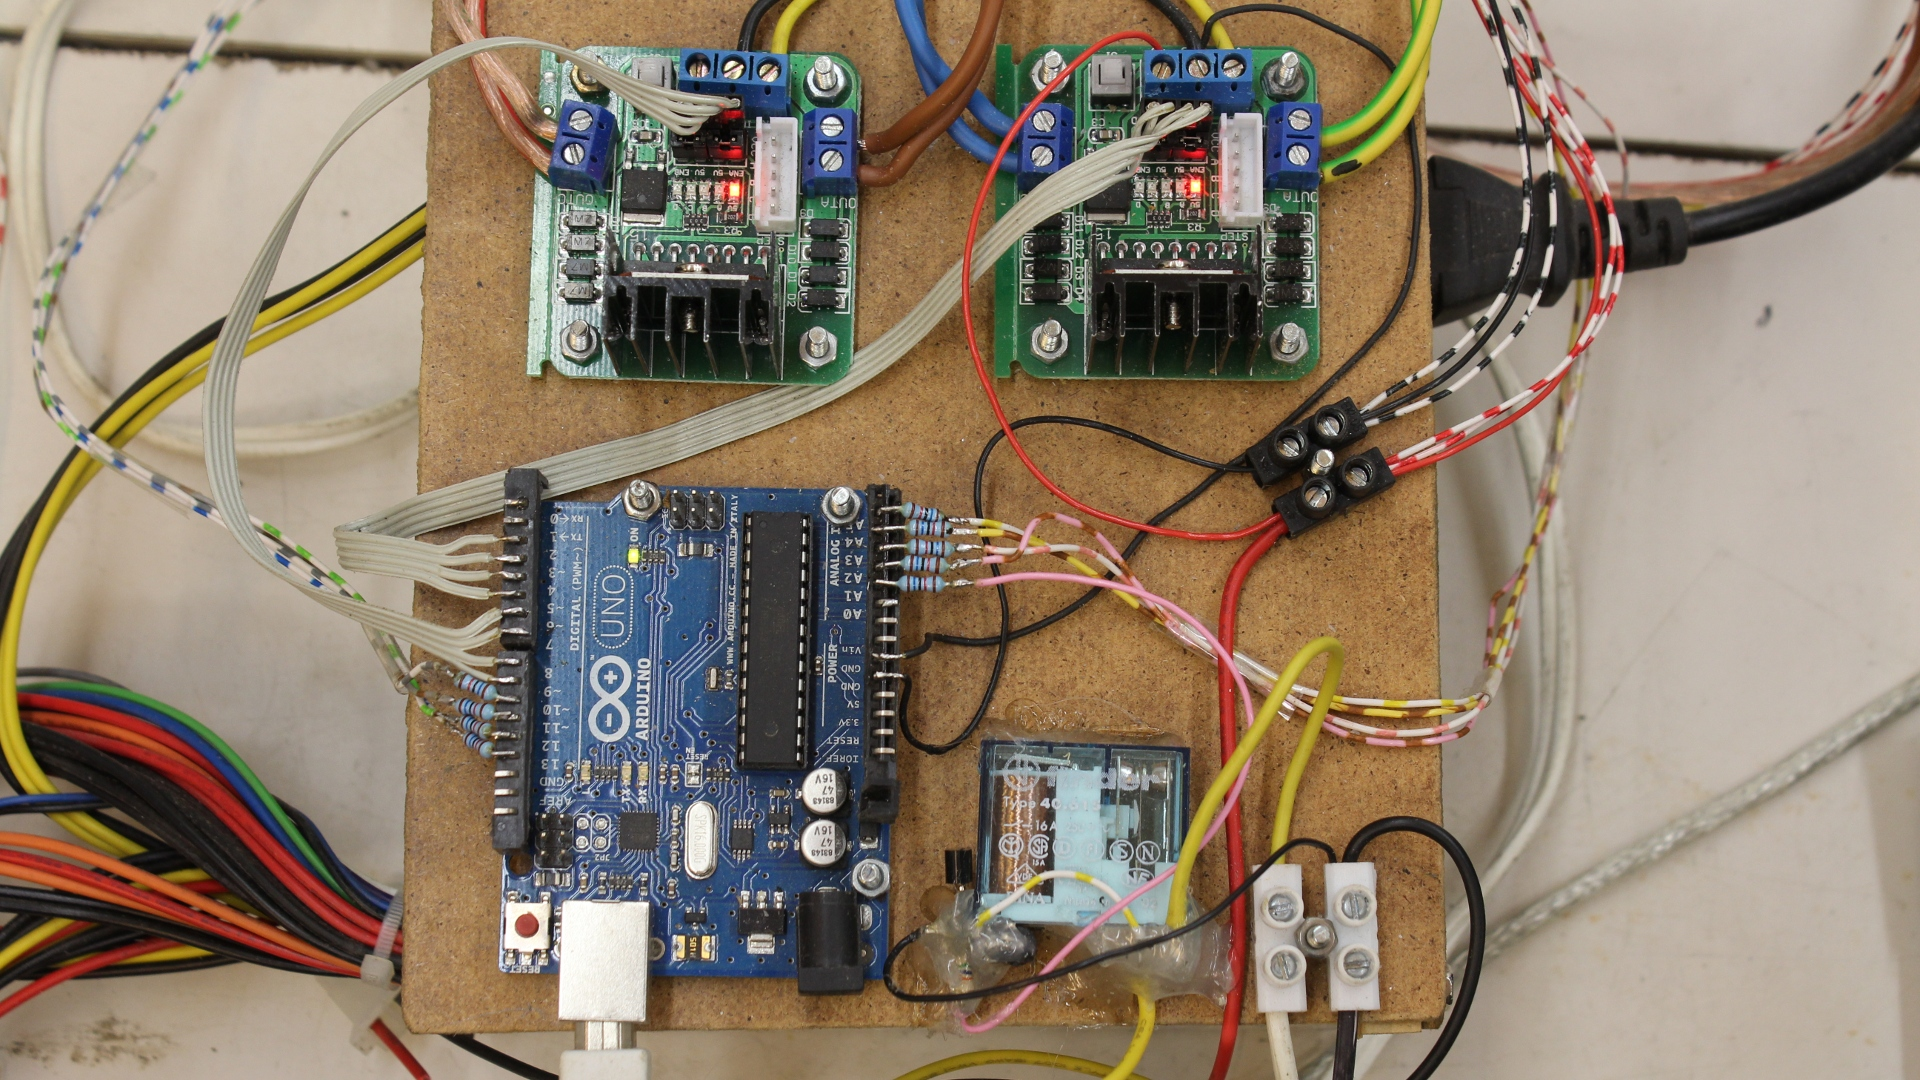 limit switch wiring diagram to arduino with Cnc V2 036 on Inventor Kodjo Afate Gnikou Makes 3d Printer From E Waste as well Wiring Harness For Circuit Board furthermore Cncs further Sending Hex Codes Arduino Nano additionally Watch.